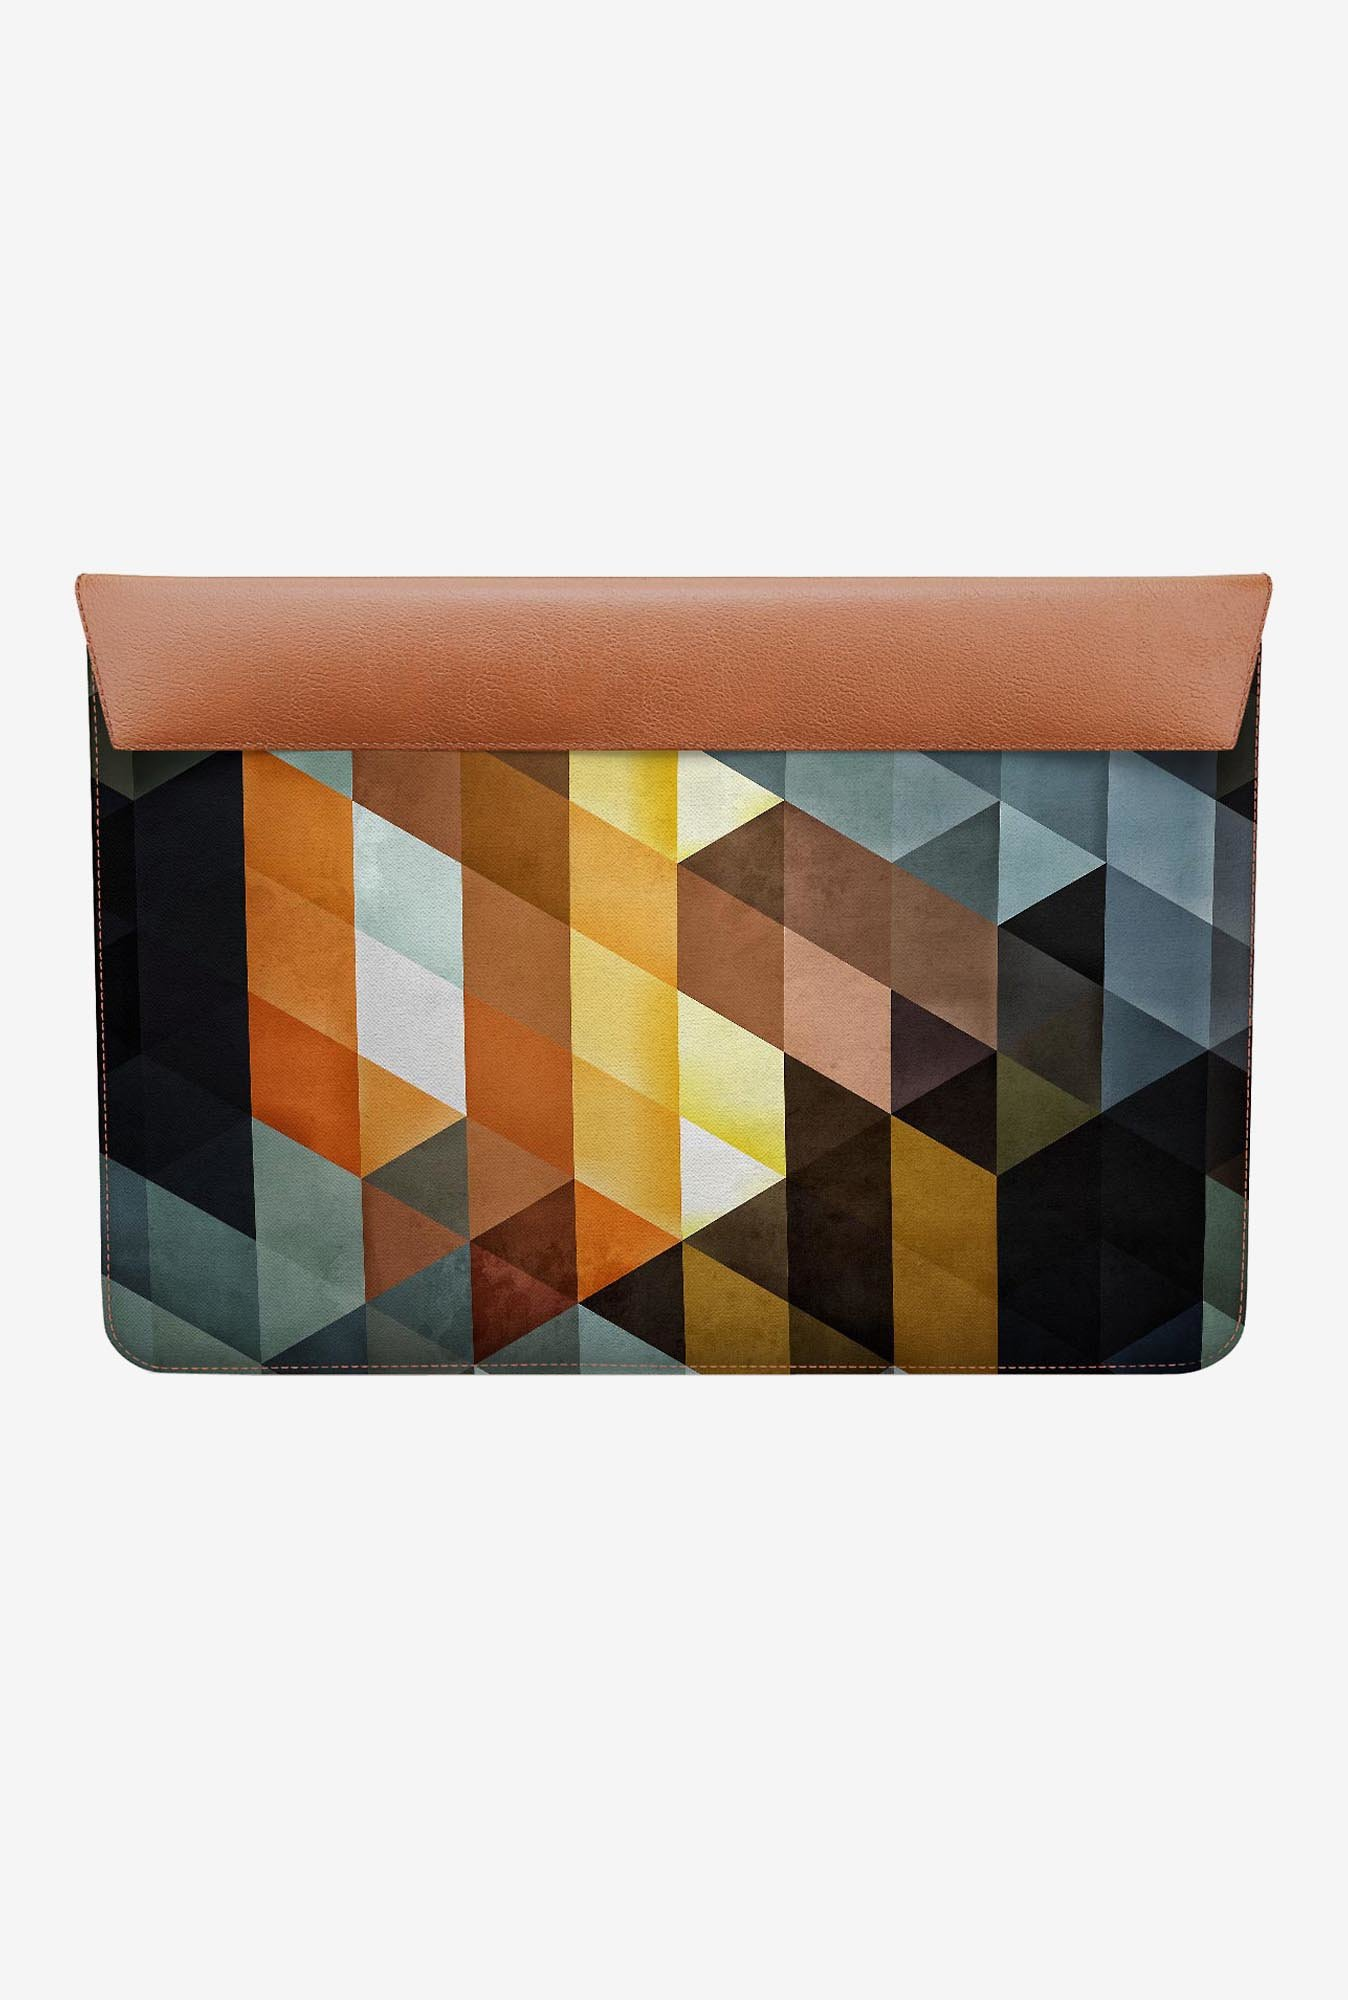 "DailyObjects Gyld Pyrymyd Macbook Pro 15"" Envelope Sleeve"